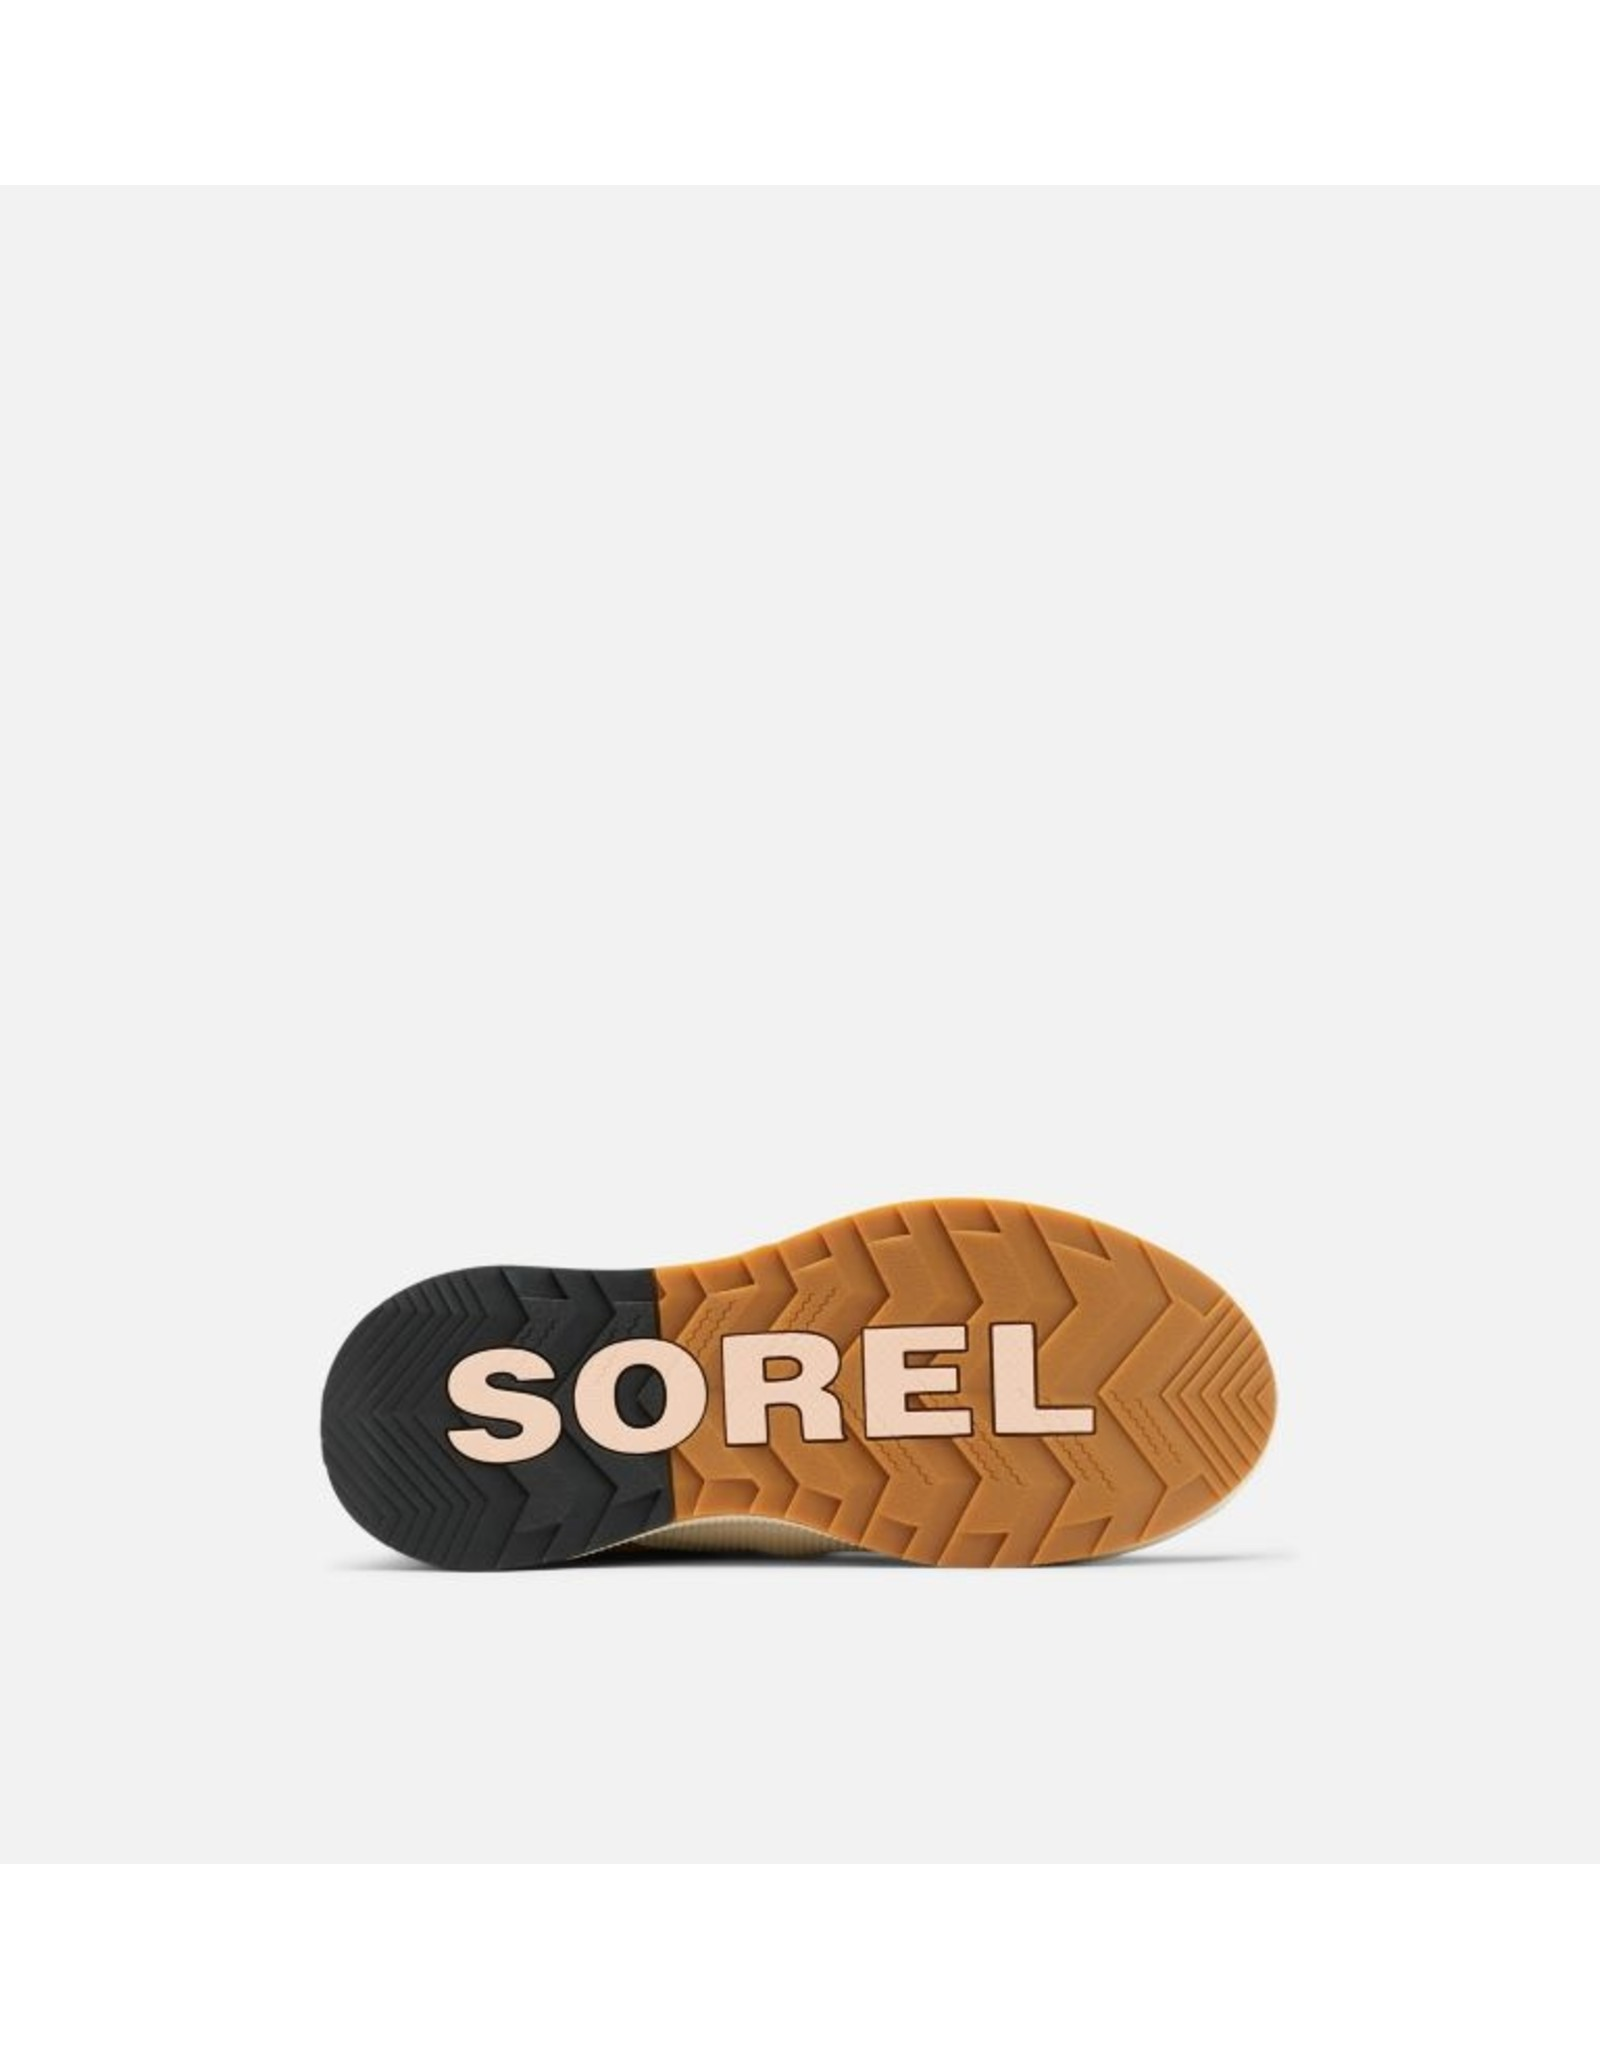 SOREL WOMEN'S OUT N ABOUT III CLASSIC DUCK BOOT-SAGE, BLACK